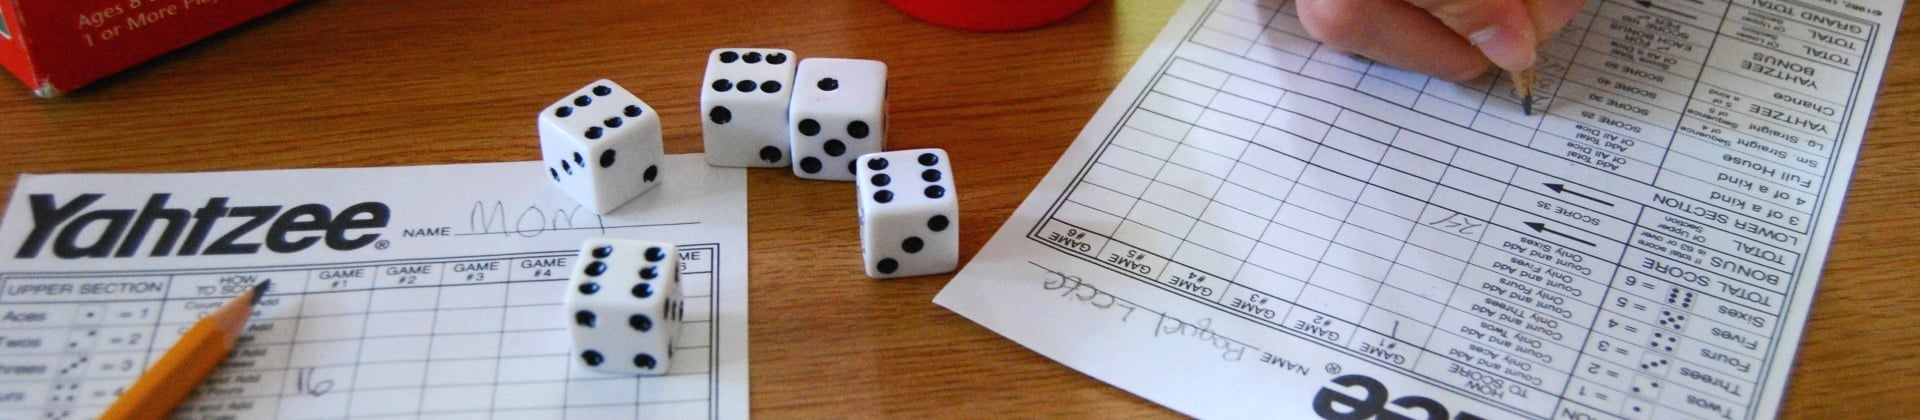 Best Dice Games Reviewed in Detail